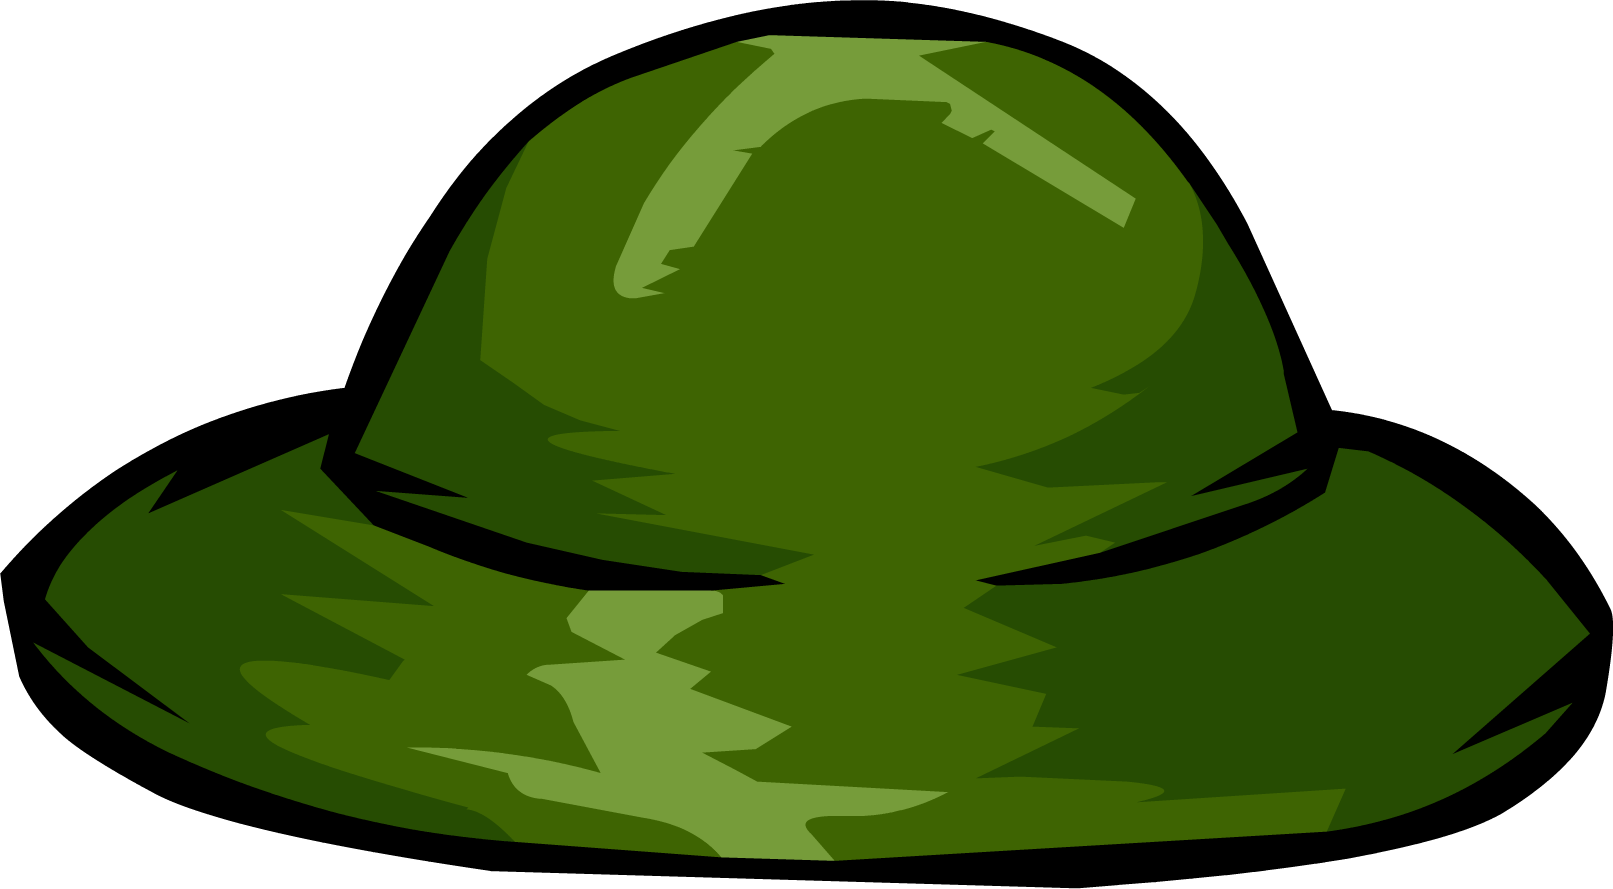 green safari hat club penguin wiki fandom powered by wikia sea creatures clip art black and white sea creatures clip art free